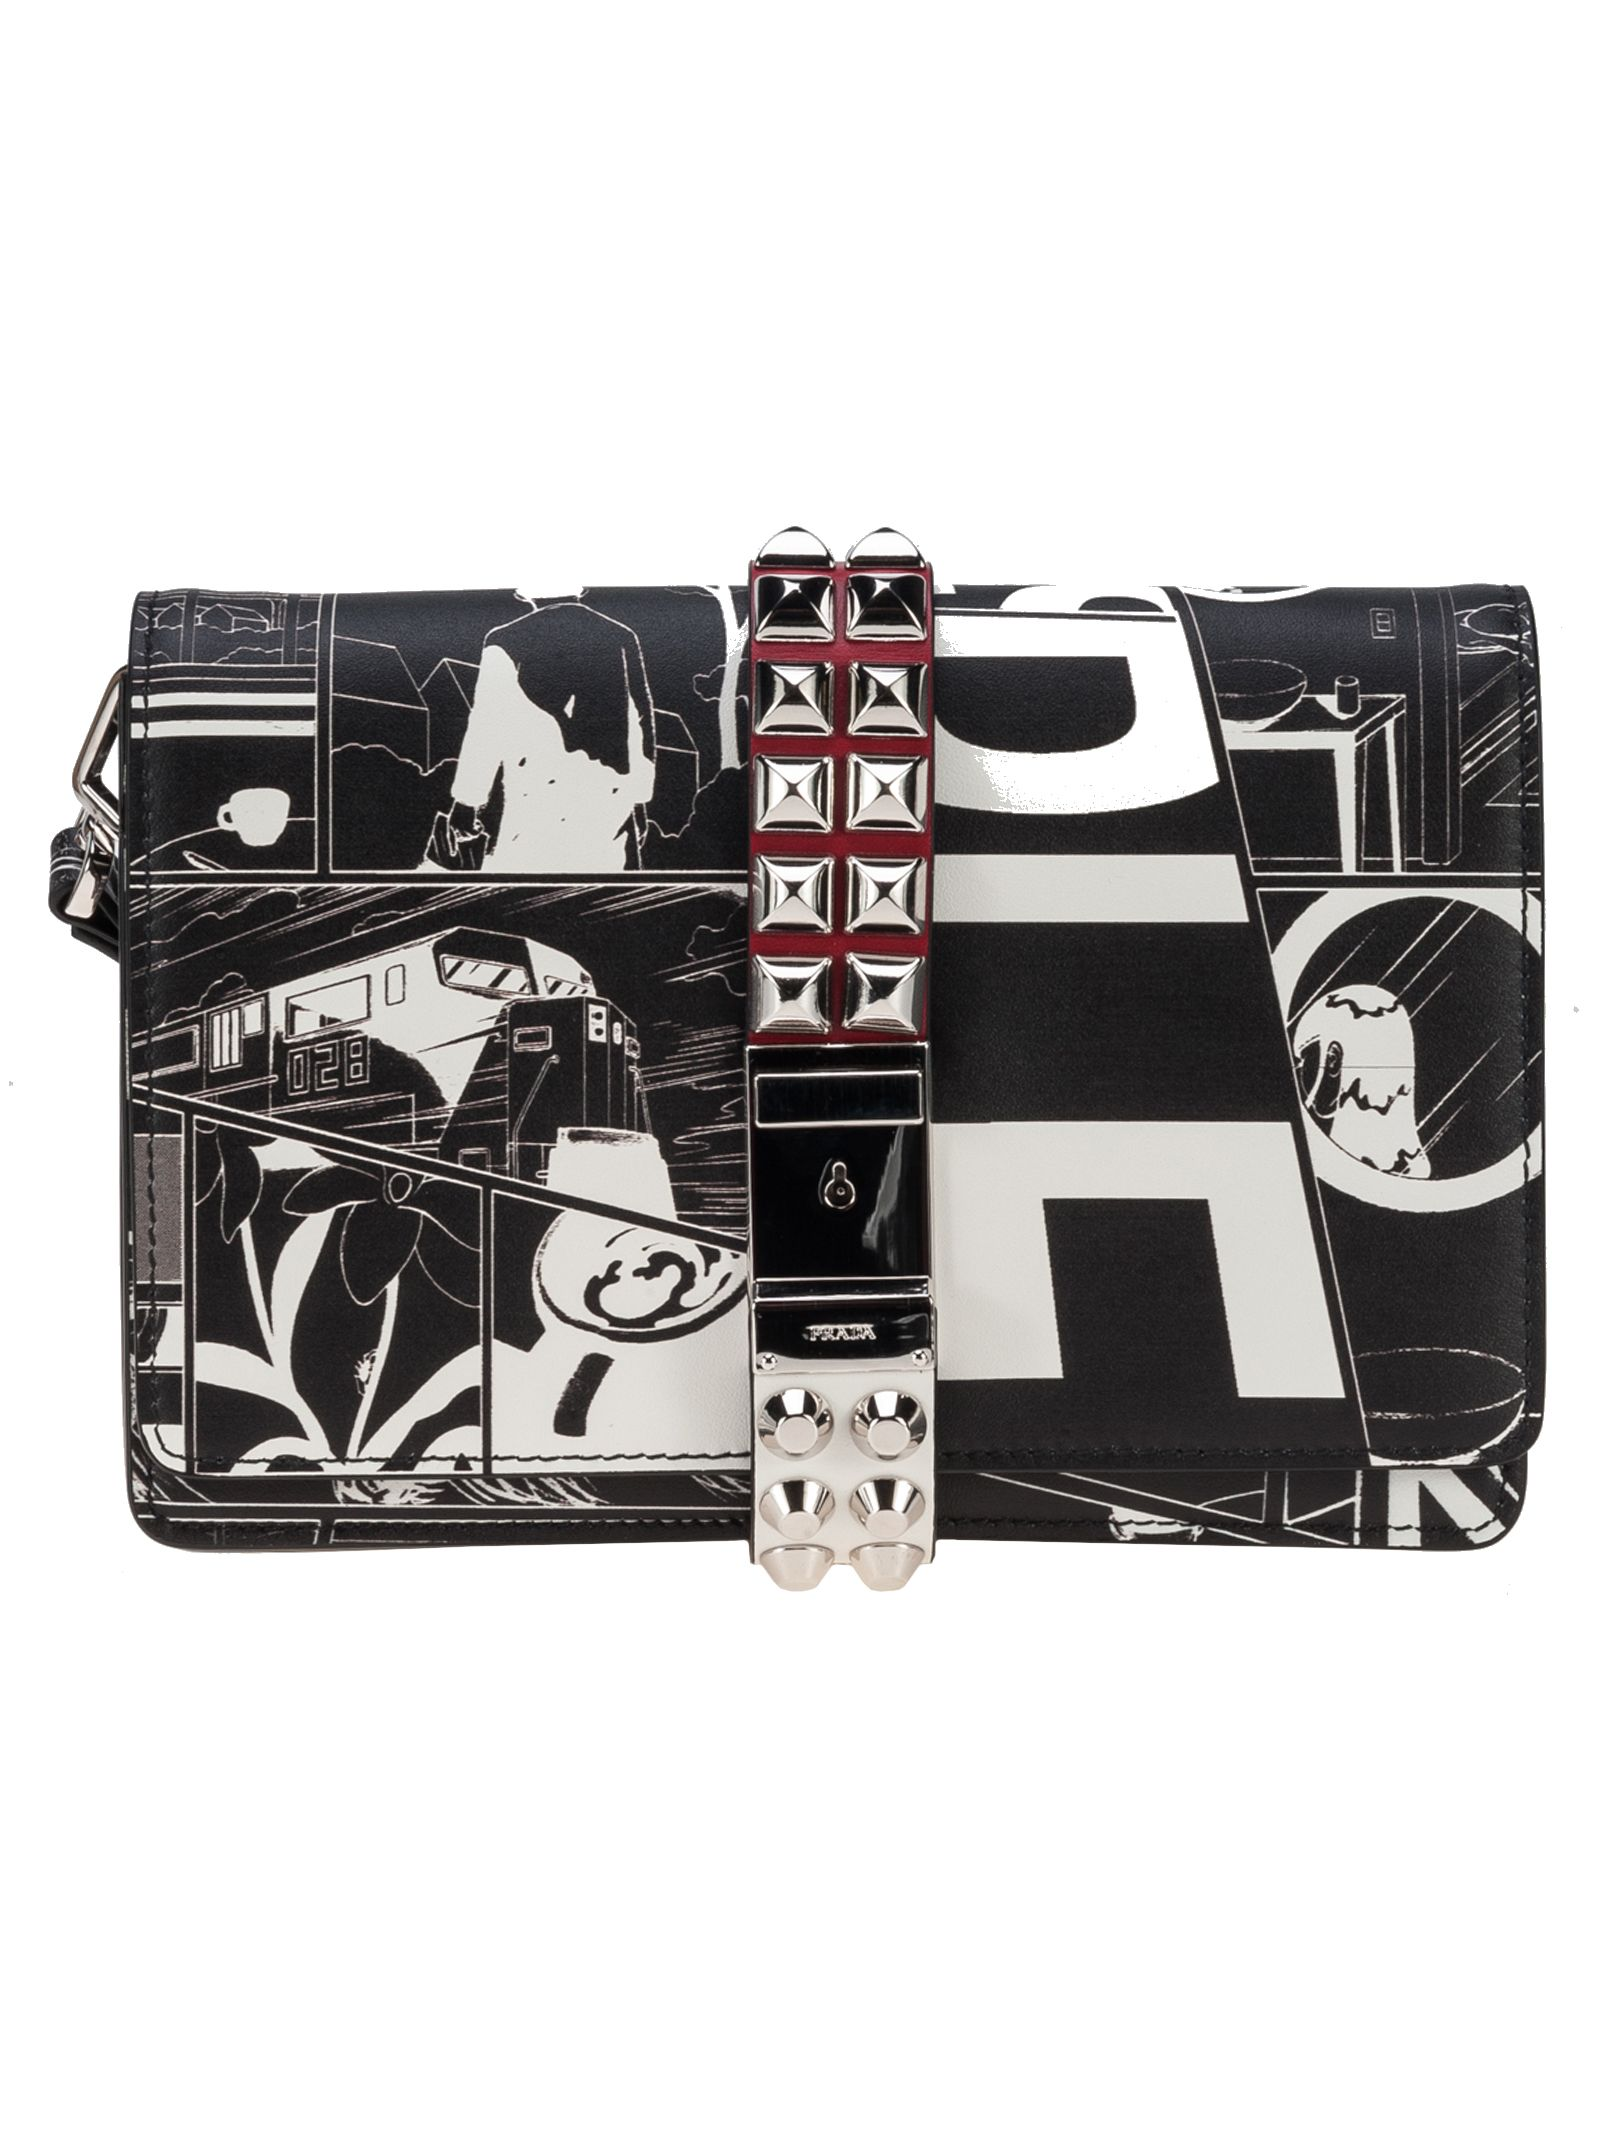 Prada Cartoon-print Wristlet Clutch Bag